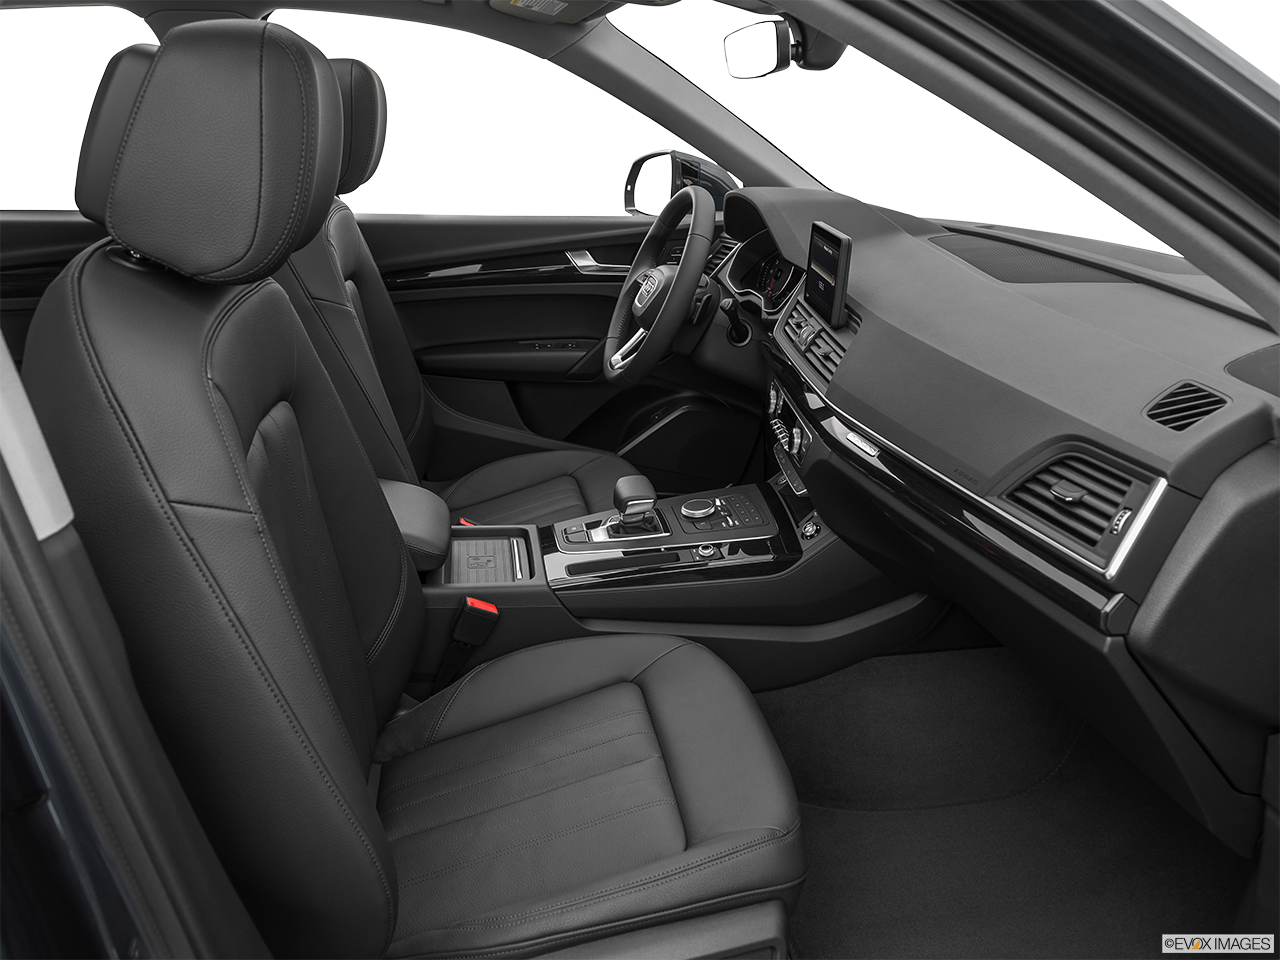 Interior view of the Audi Q5 PHEV